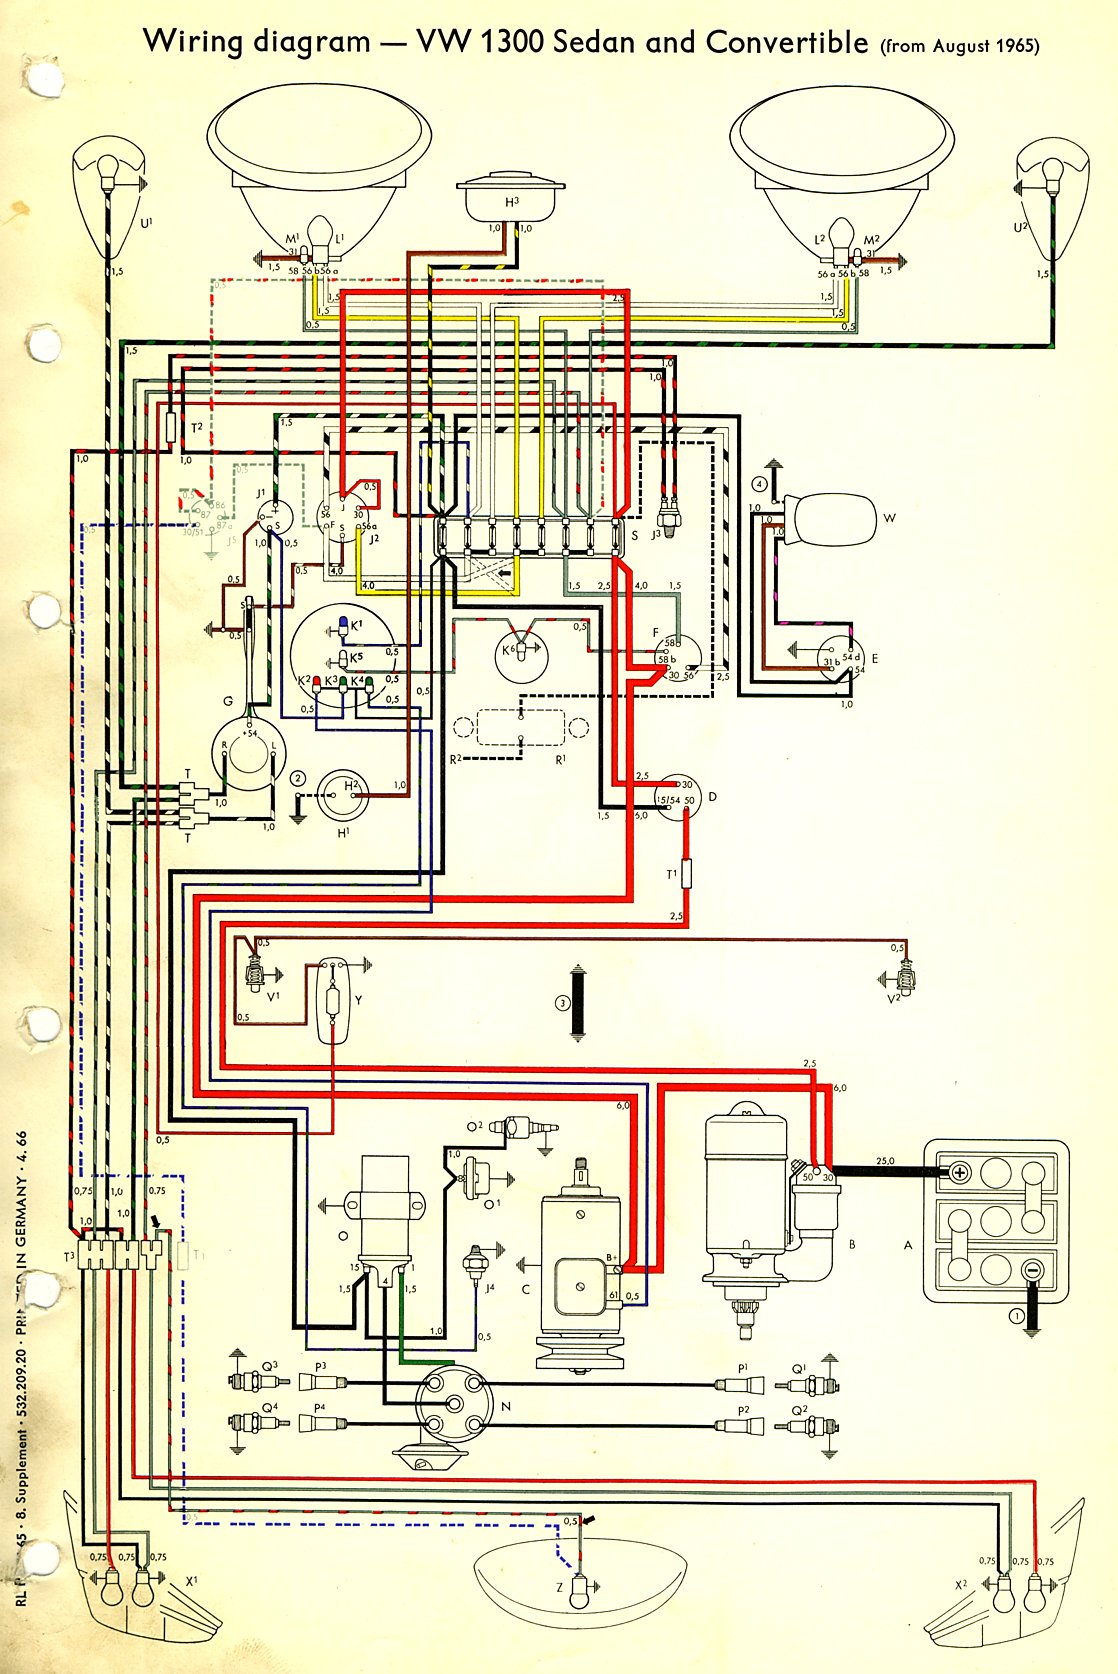 bug_66 thesamba com type 1 wiring diagrams vw wiring diagram at gsmportal.co